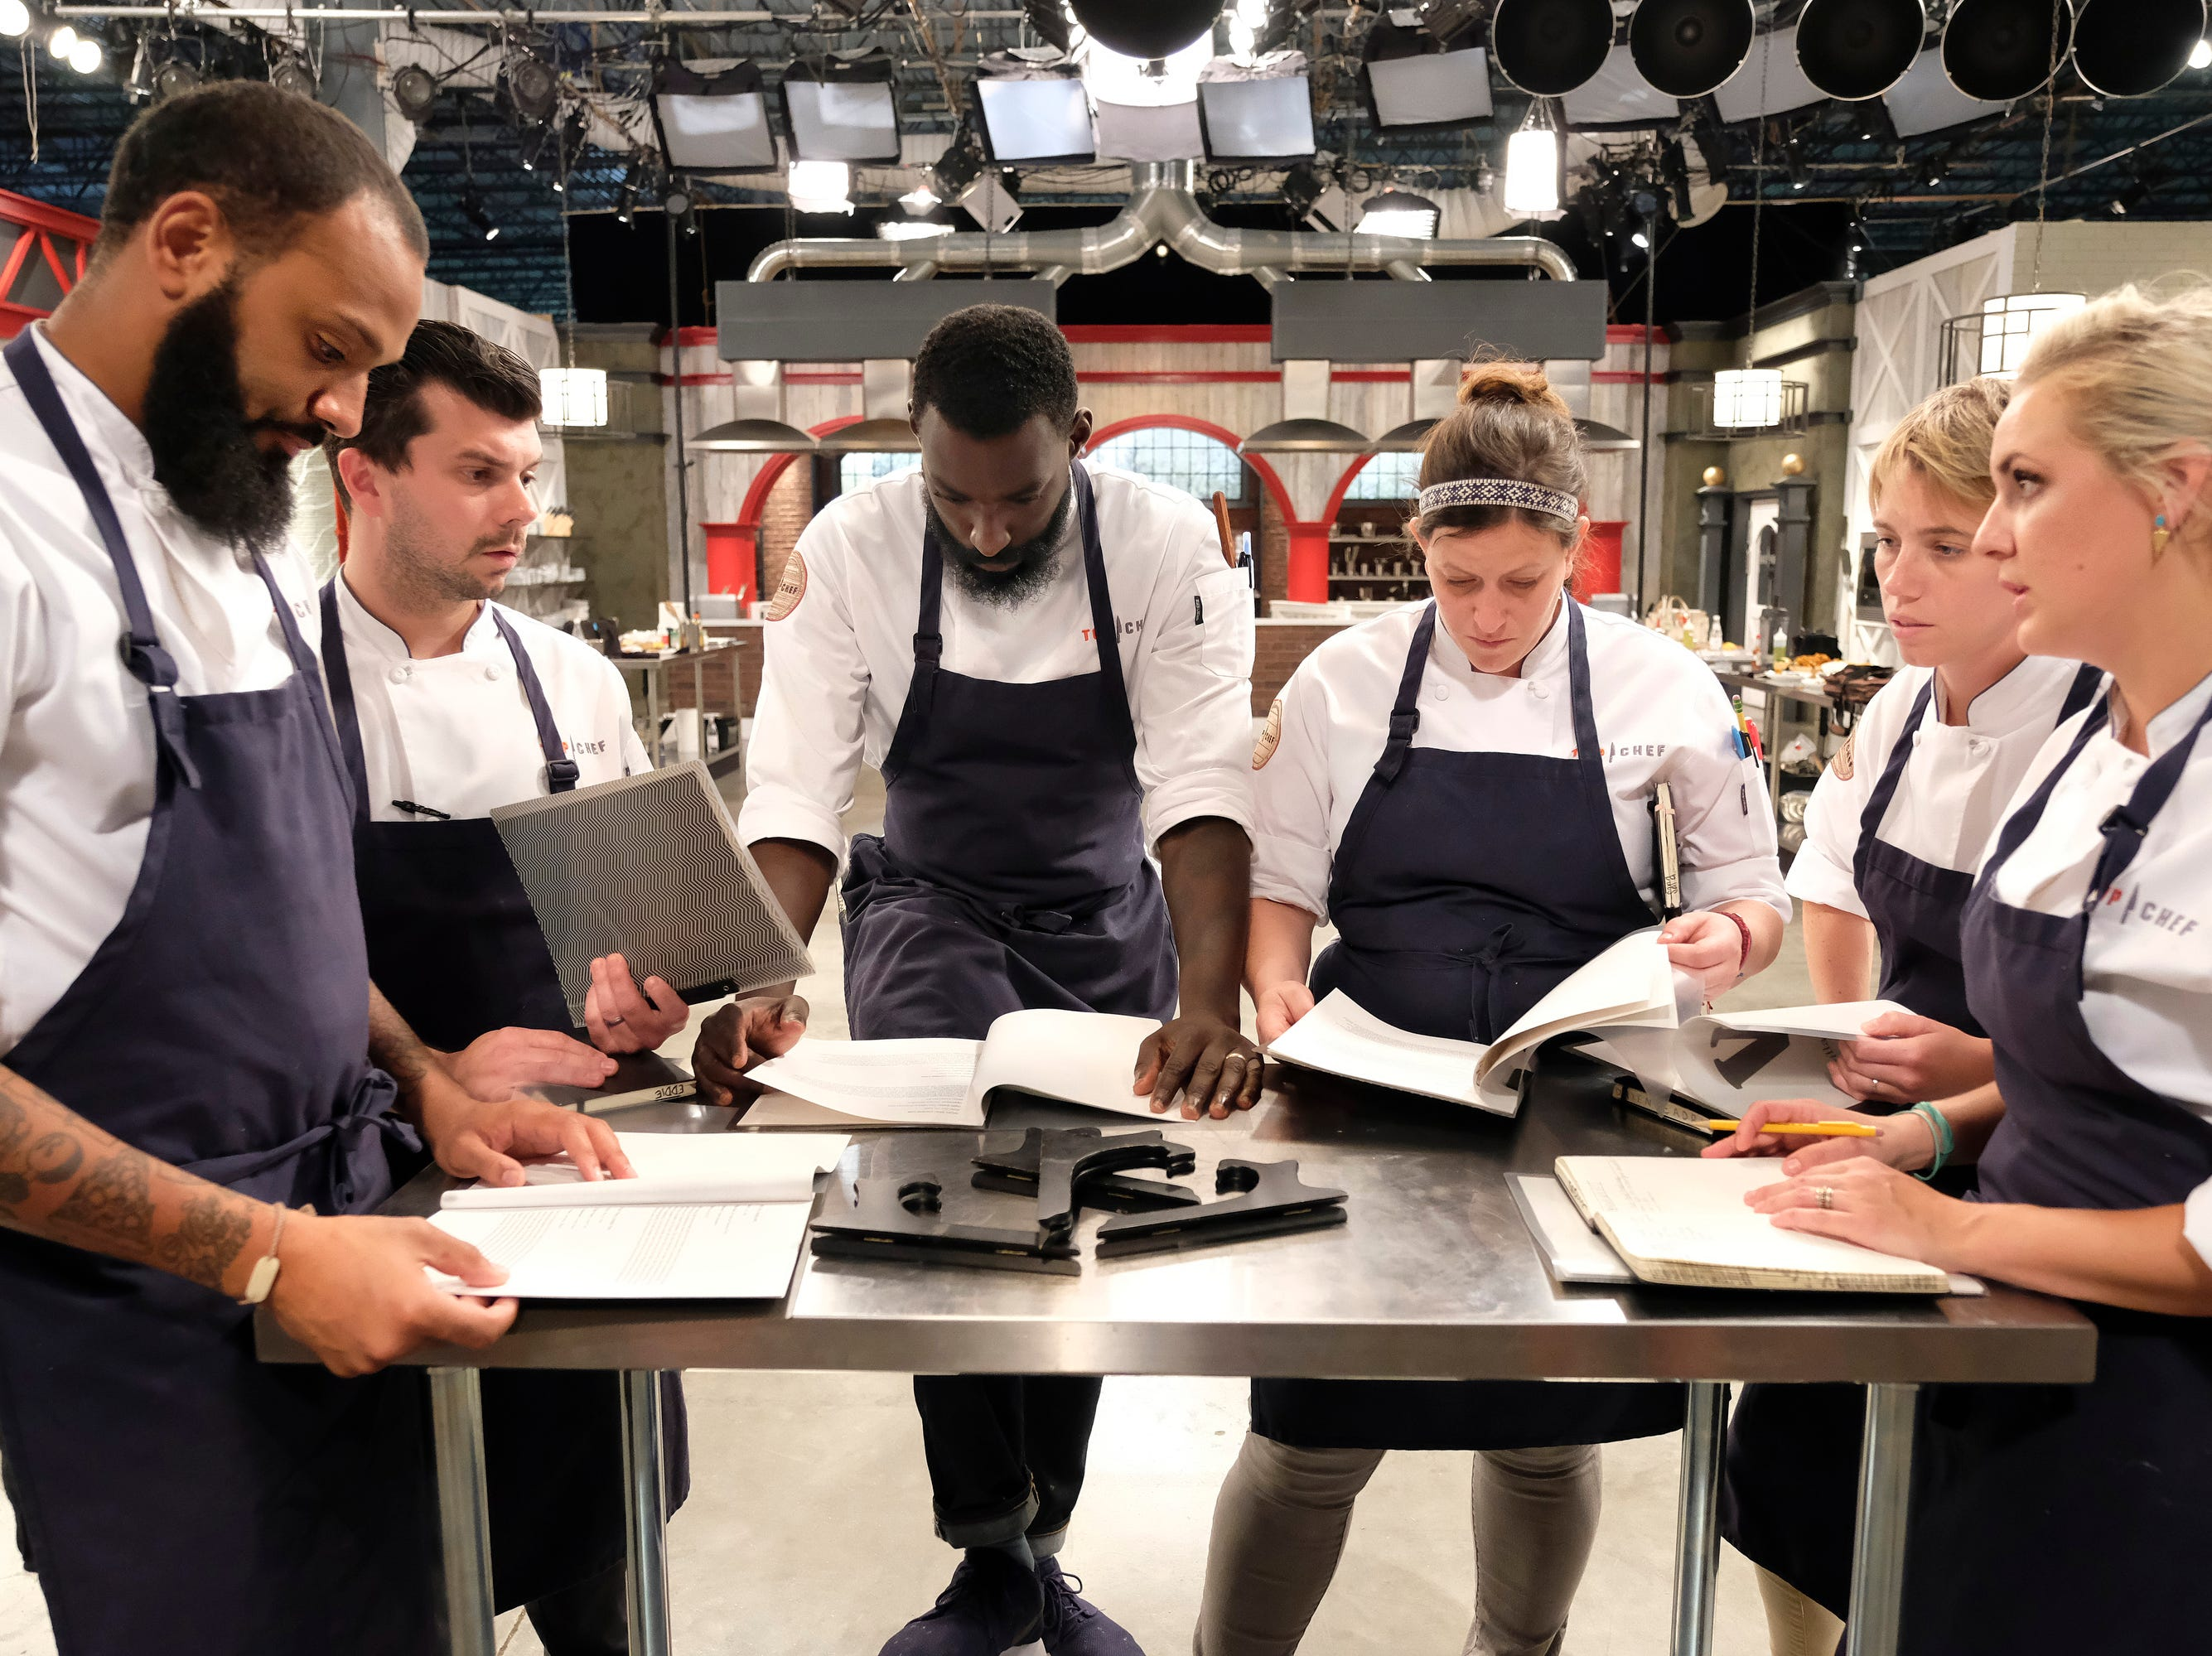 (From left to right): Contestants Justin Sutherland, Eddie Konrad, Eric Adjepong, Sara Bradley, Adrienne Wright and Kelsey Barnard on episode 11 of Bravo's 'Top Chef:' Kentucky season.